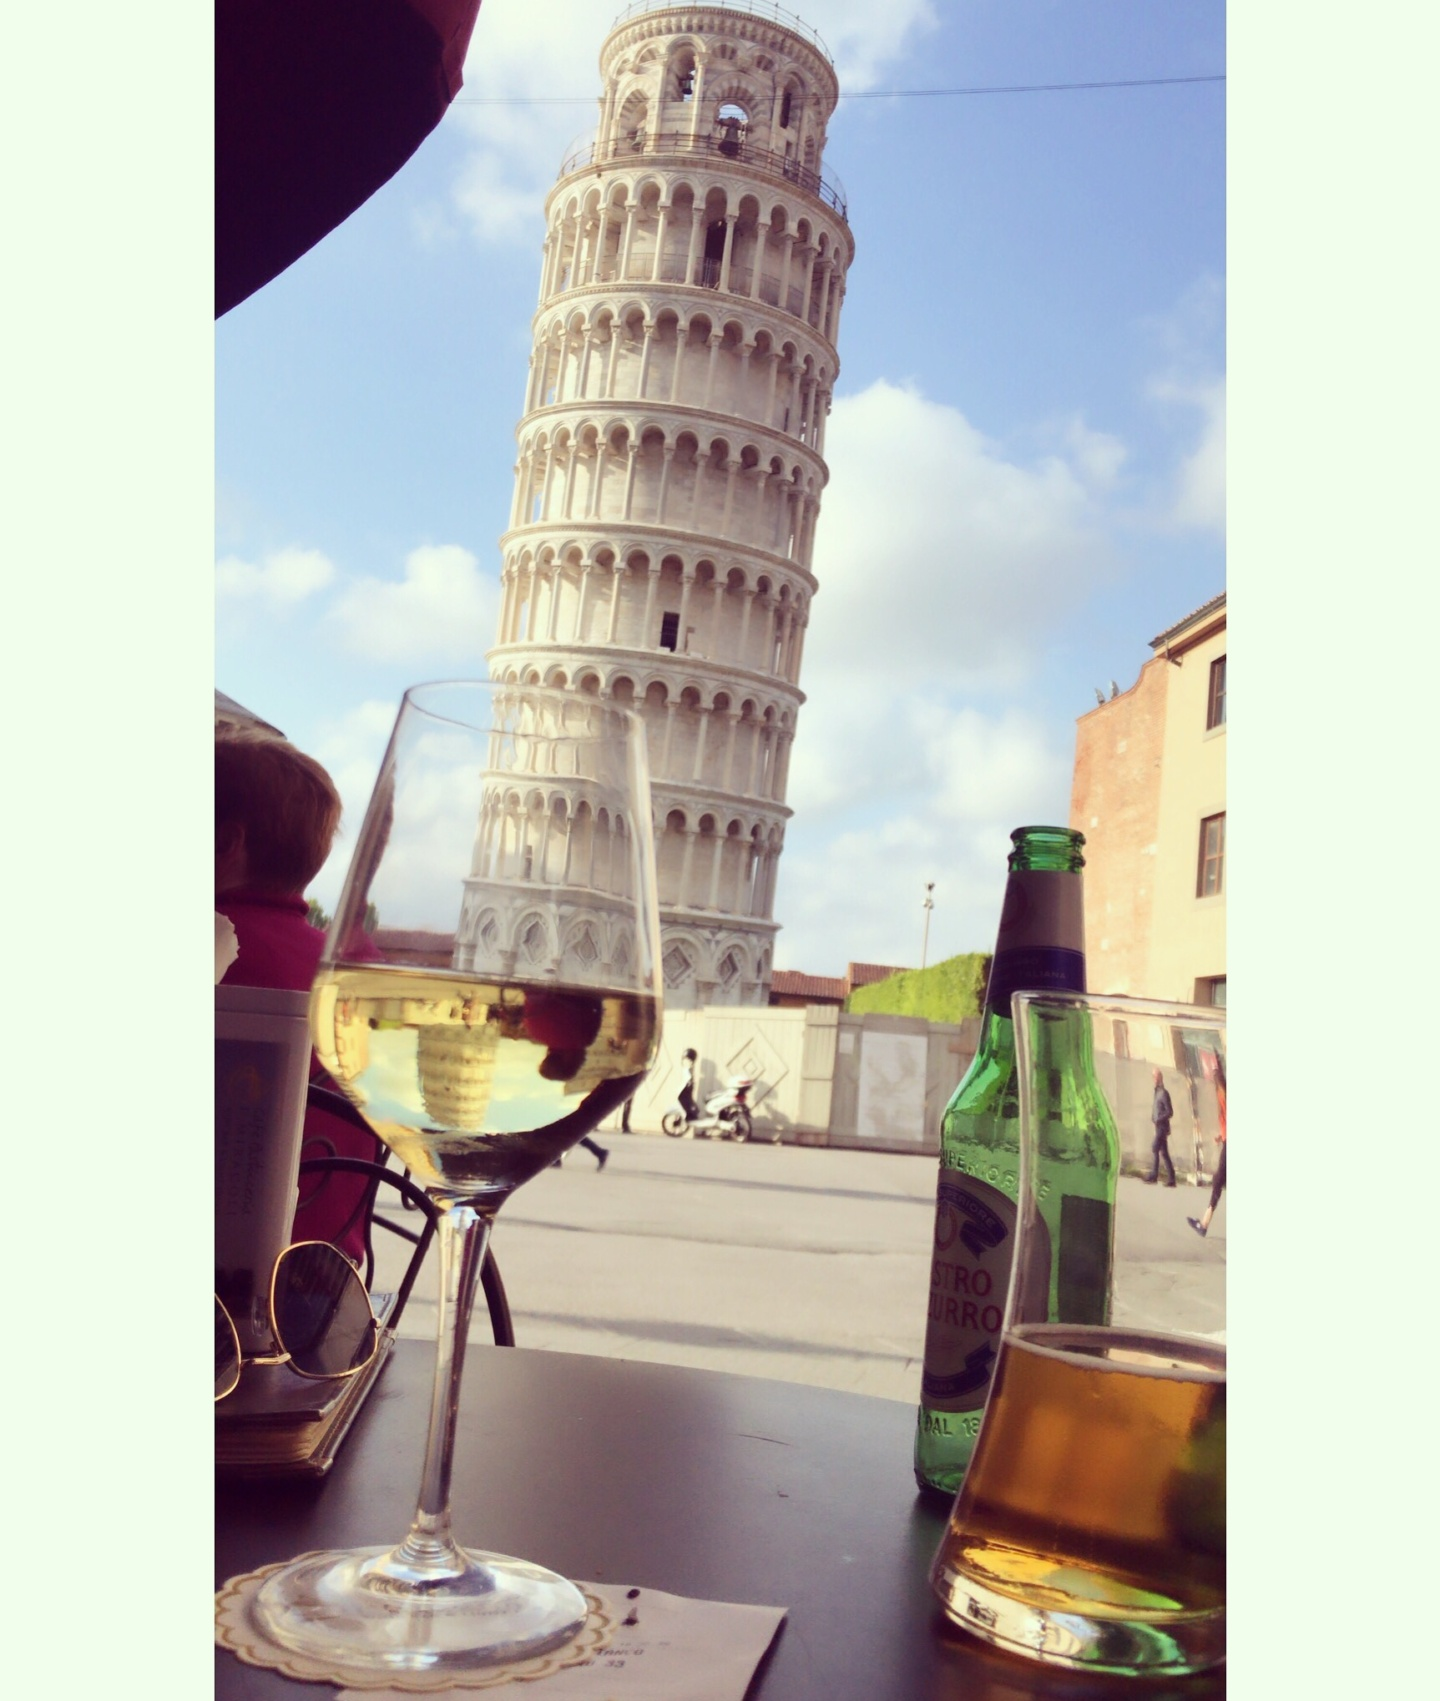 wanderlustbee, view of the leaning tower of pisa